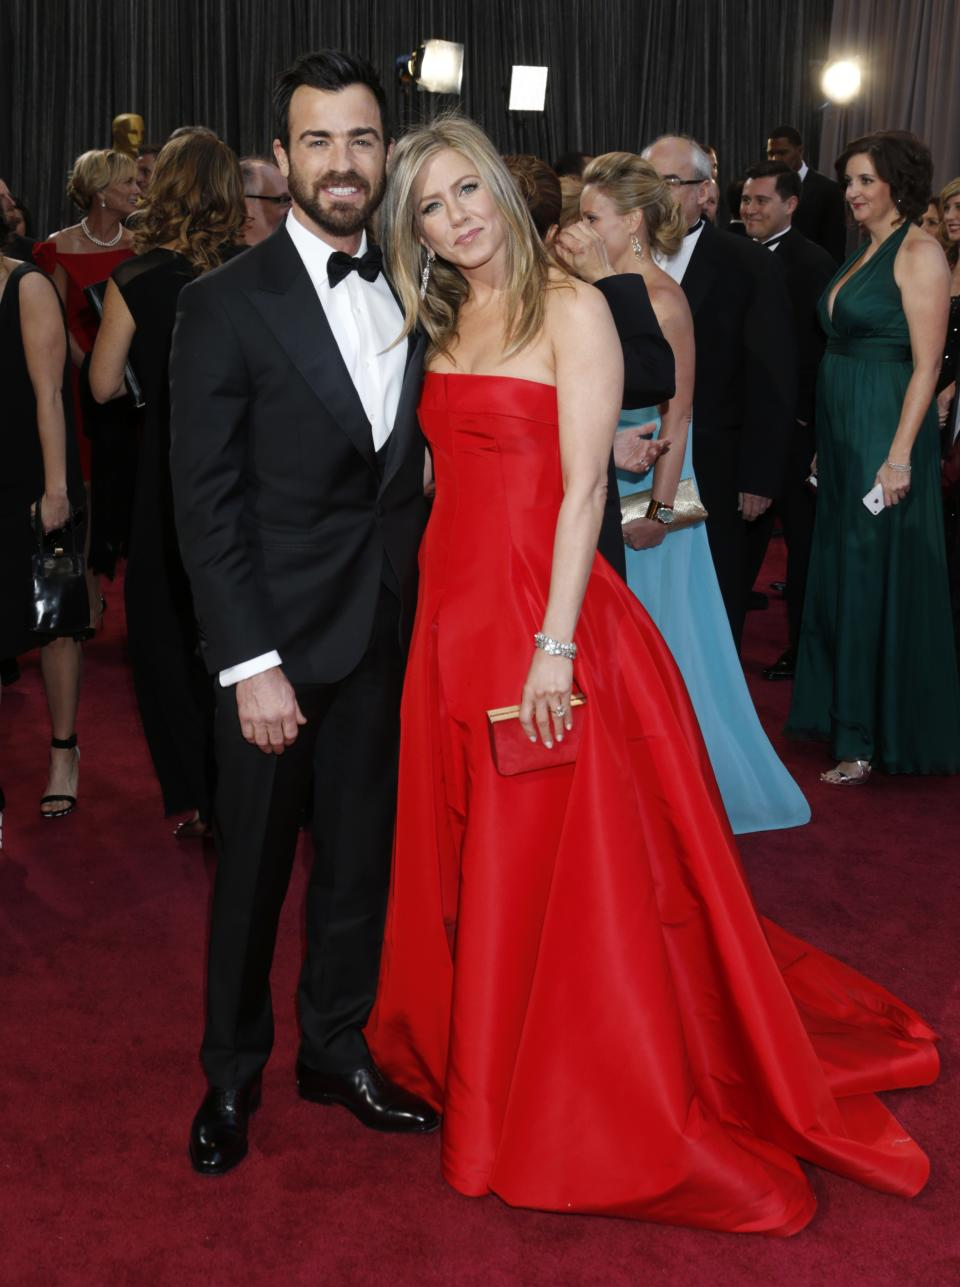 Actors Justin Theroux, left, and Jennifer Aniston arrive at the Oscars at the Dolby Theatre on Sunday Feb. 24, 2013, in Los Angeles. (Photo by Todd Williamson/Invision/AP)